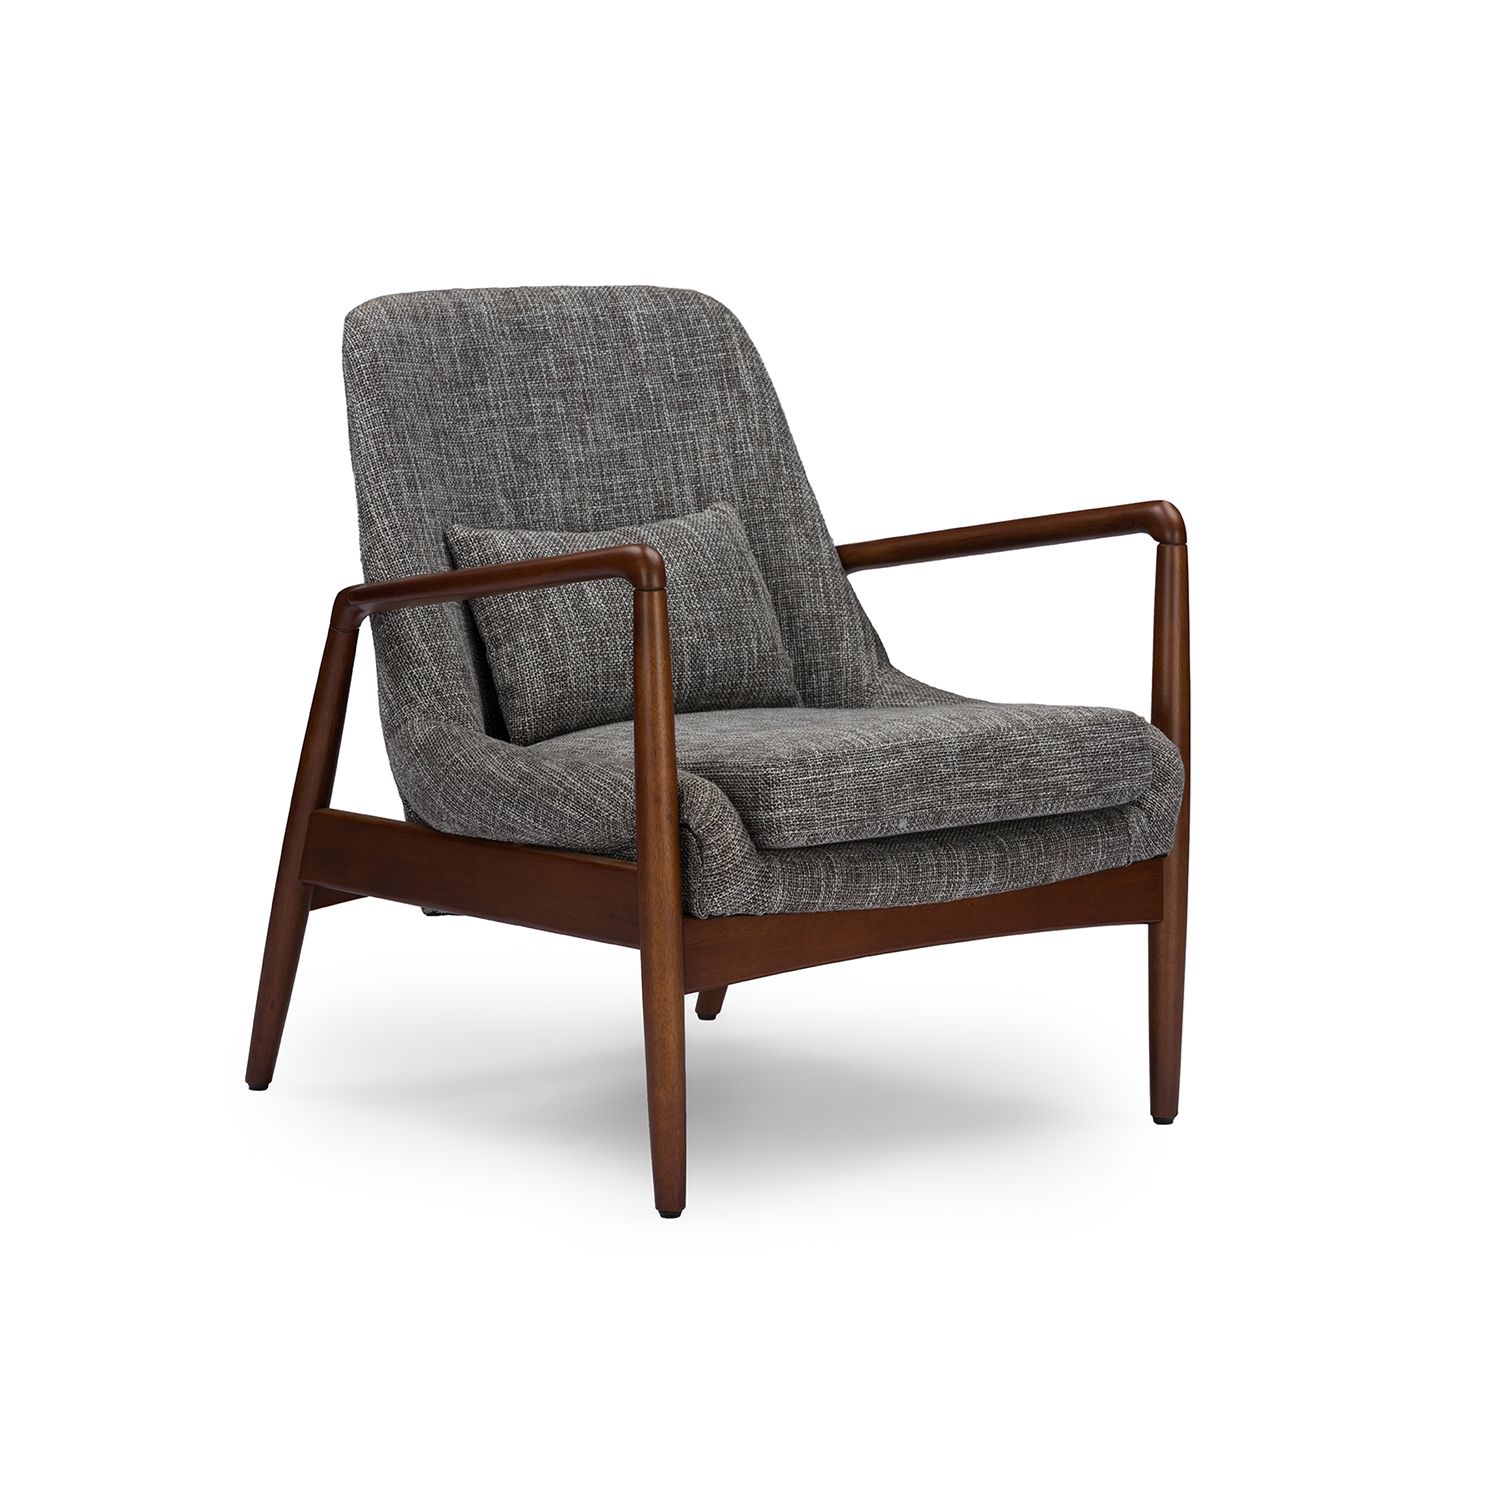 Delicieux Baxton Studio Carter Mid Century Modern Retro Grey Fabric Upholstered  Leisure Accent Chair In Walnut Wood Frame